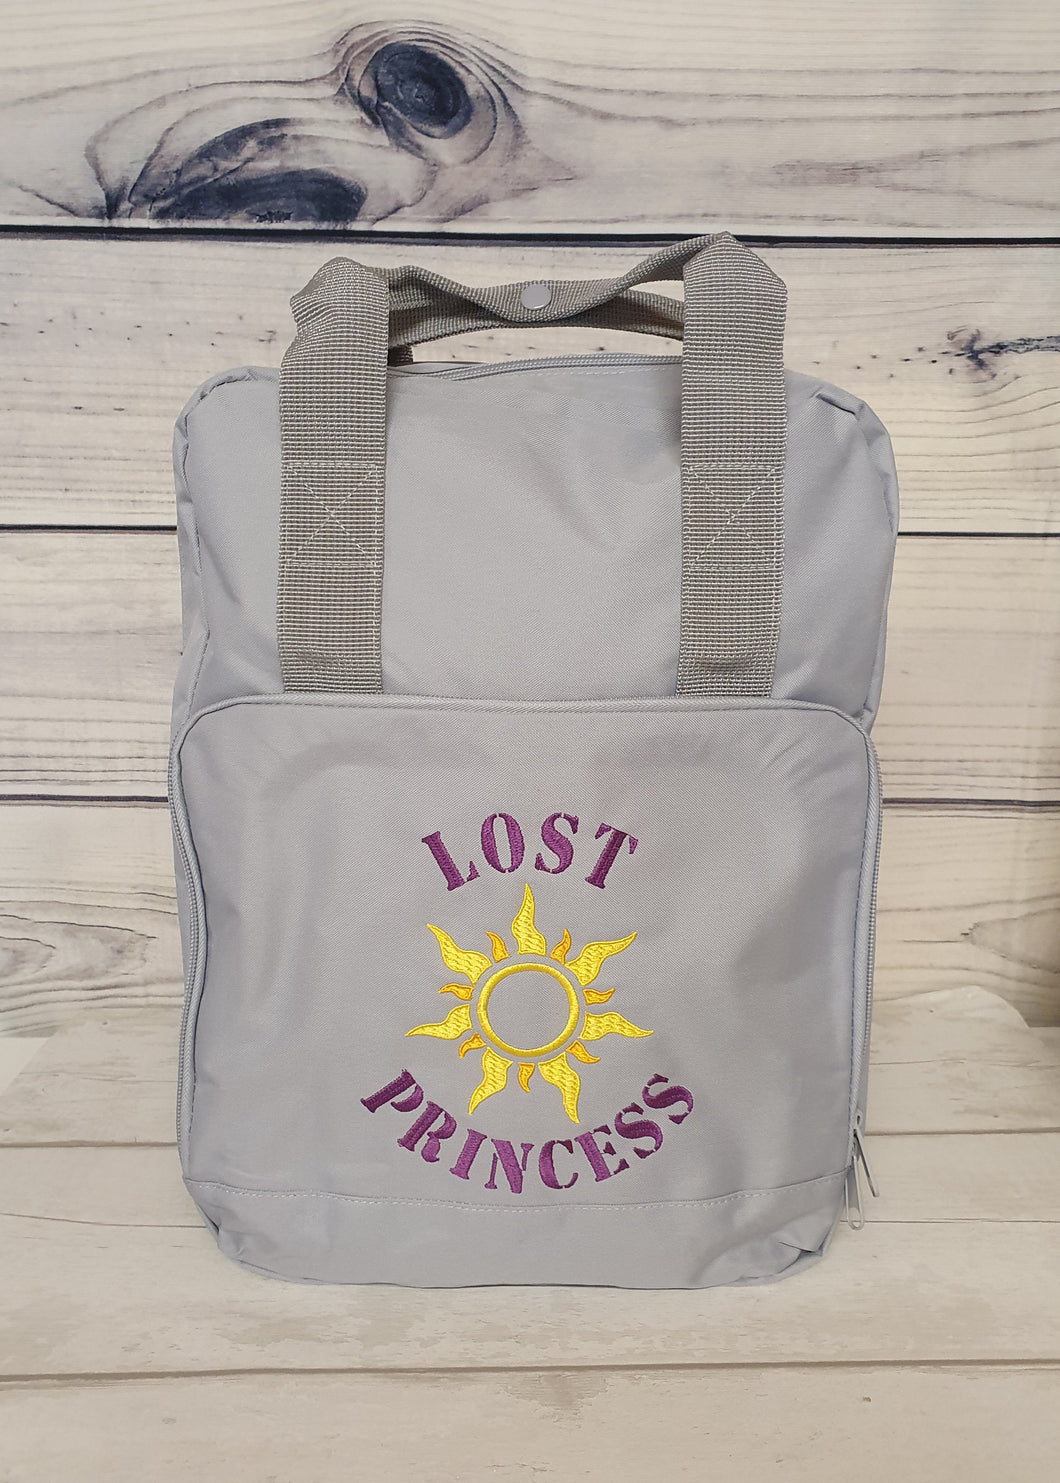 Lost Princess Backpack